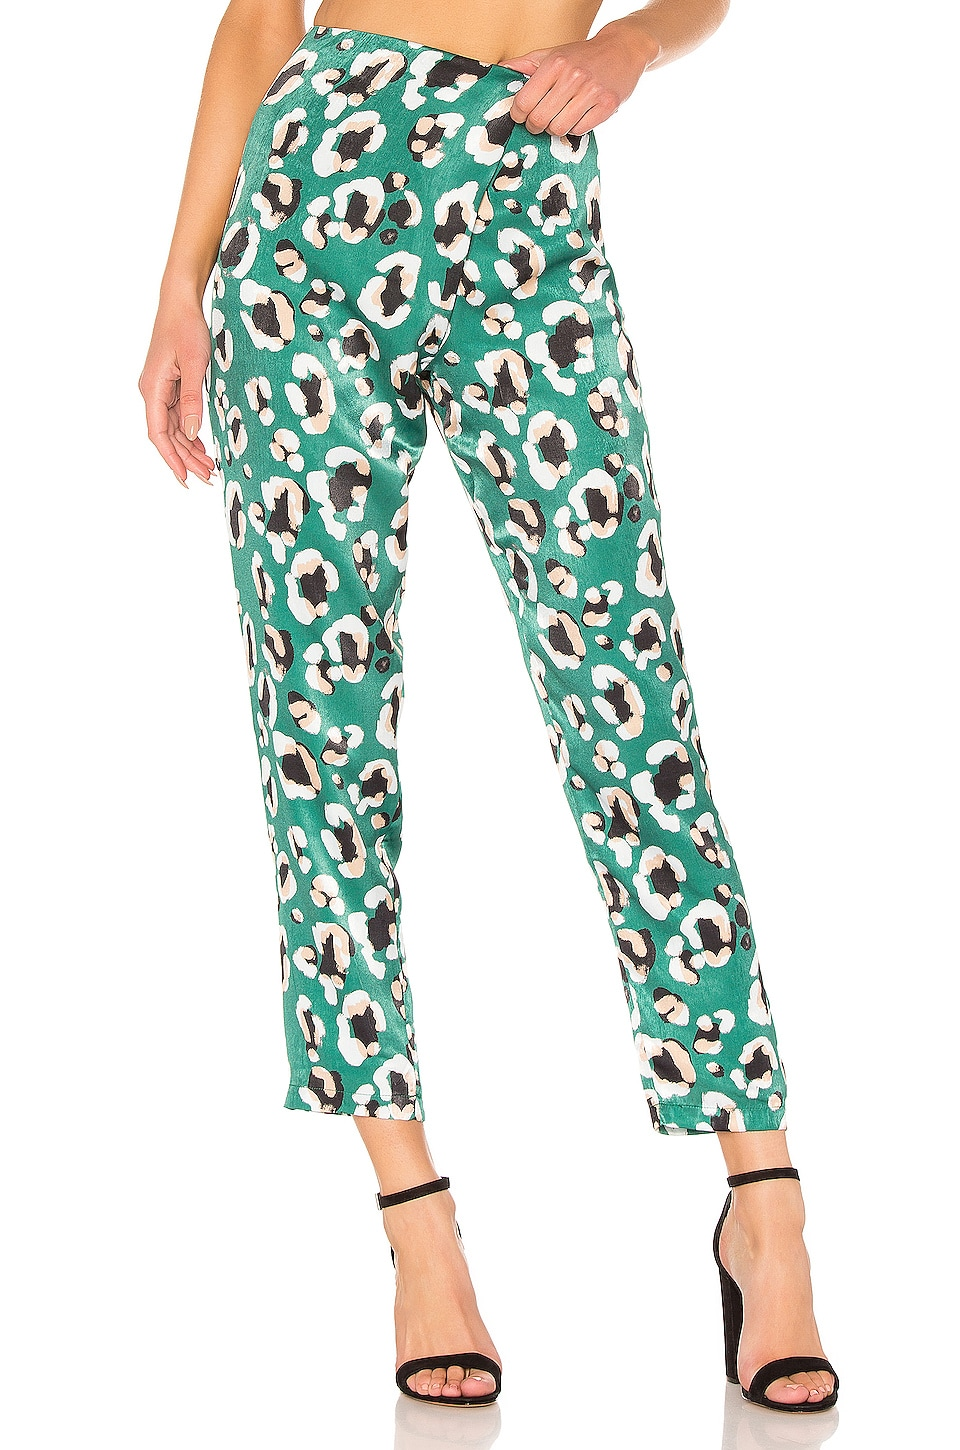 House of Harlow 1960 x REVOLVE Odel Pant in Green Leopard